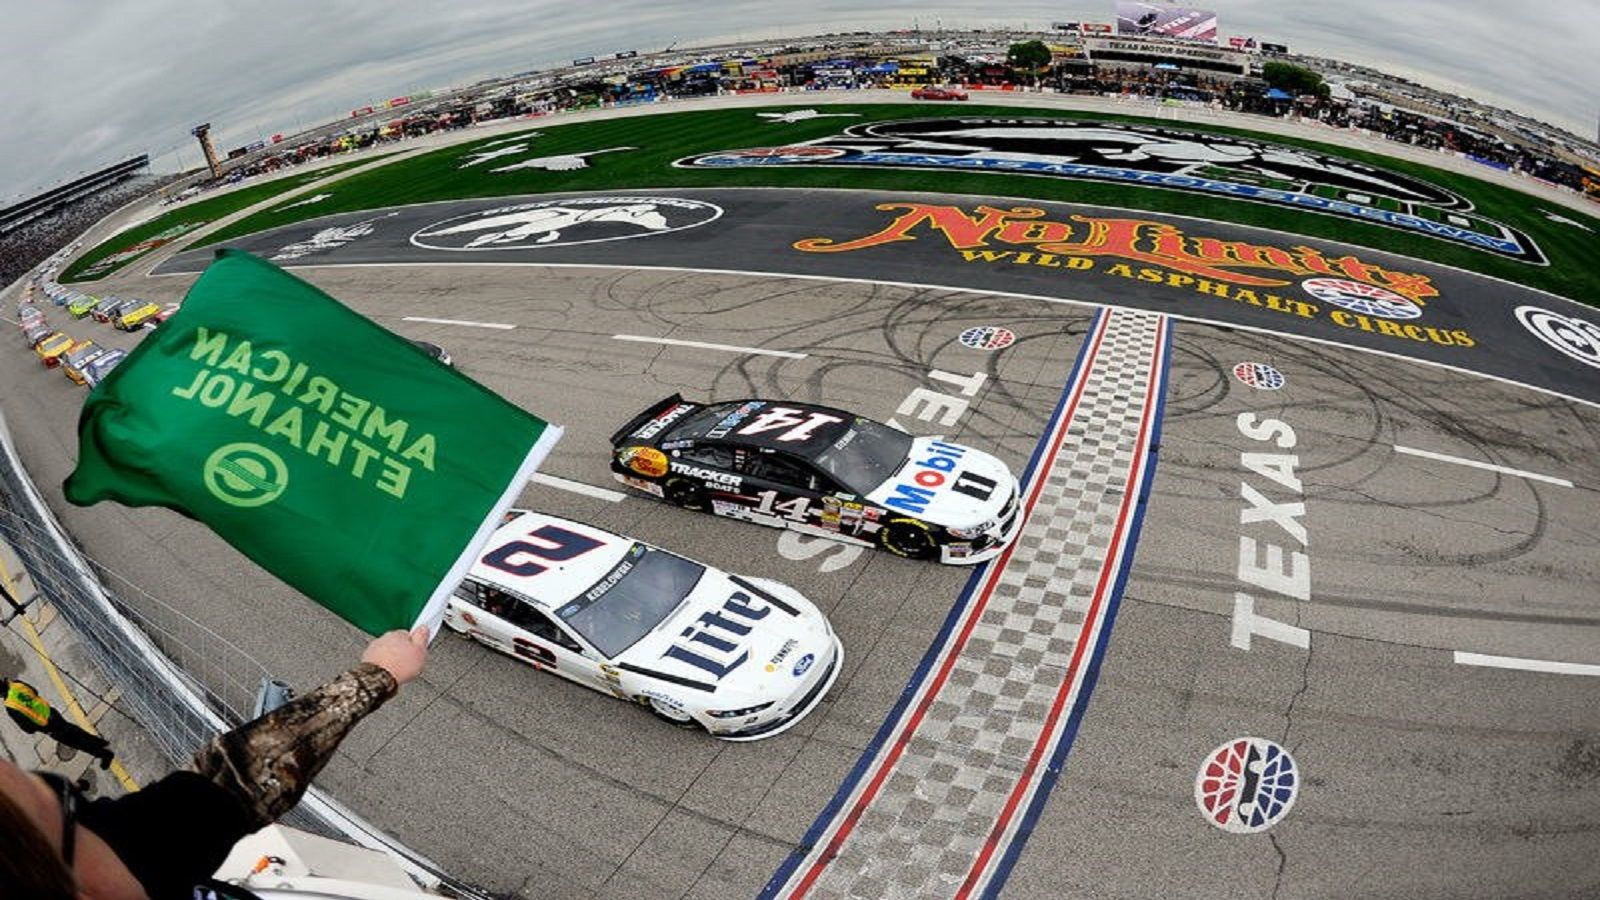 Fun Things to Do in Dallas - Texas Motor Speedway